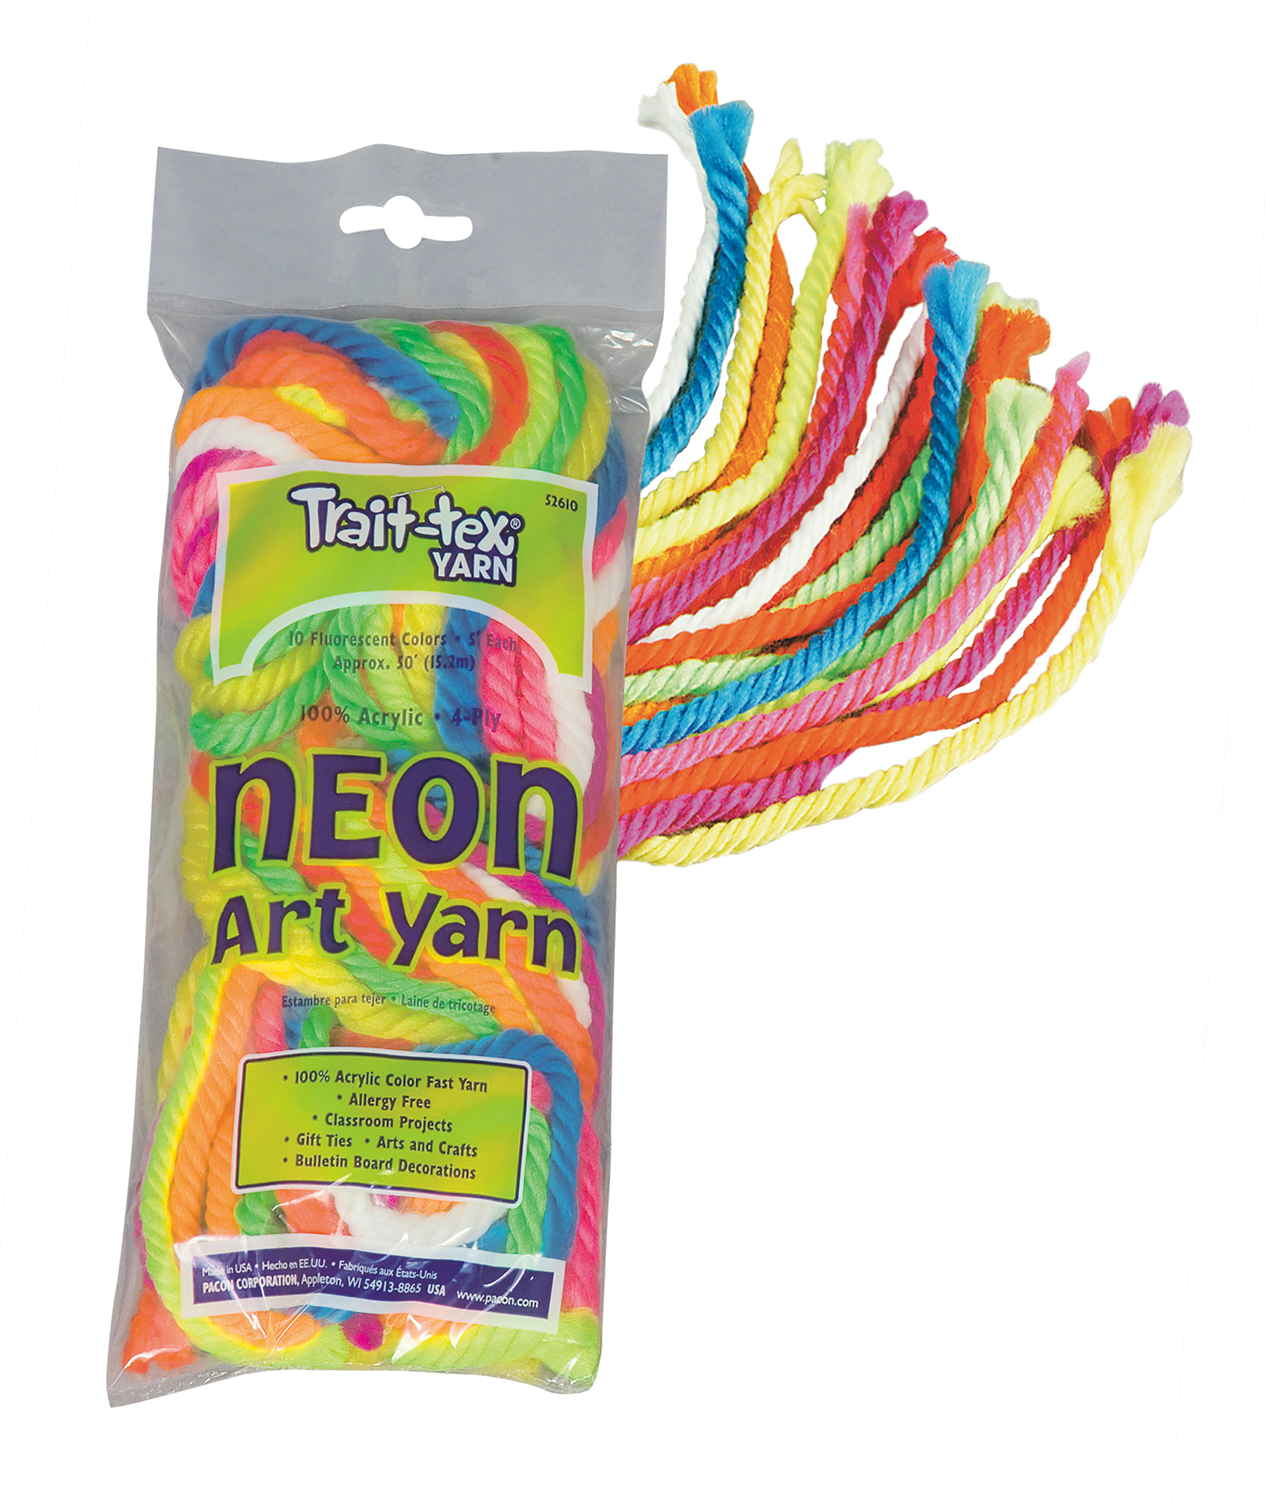 Trait-tex® Art Yarn